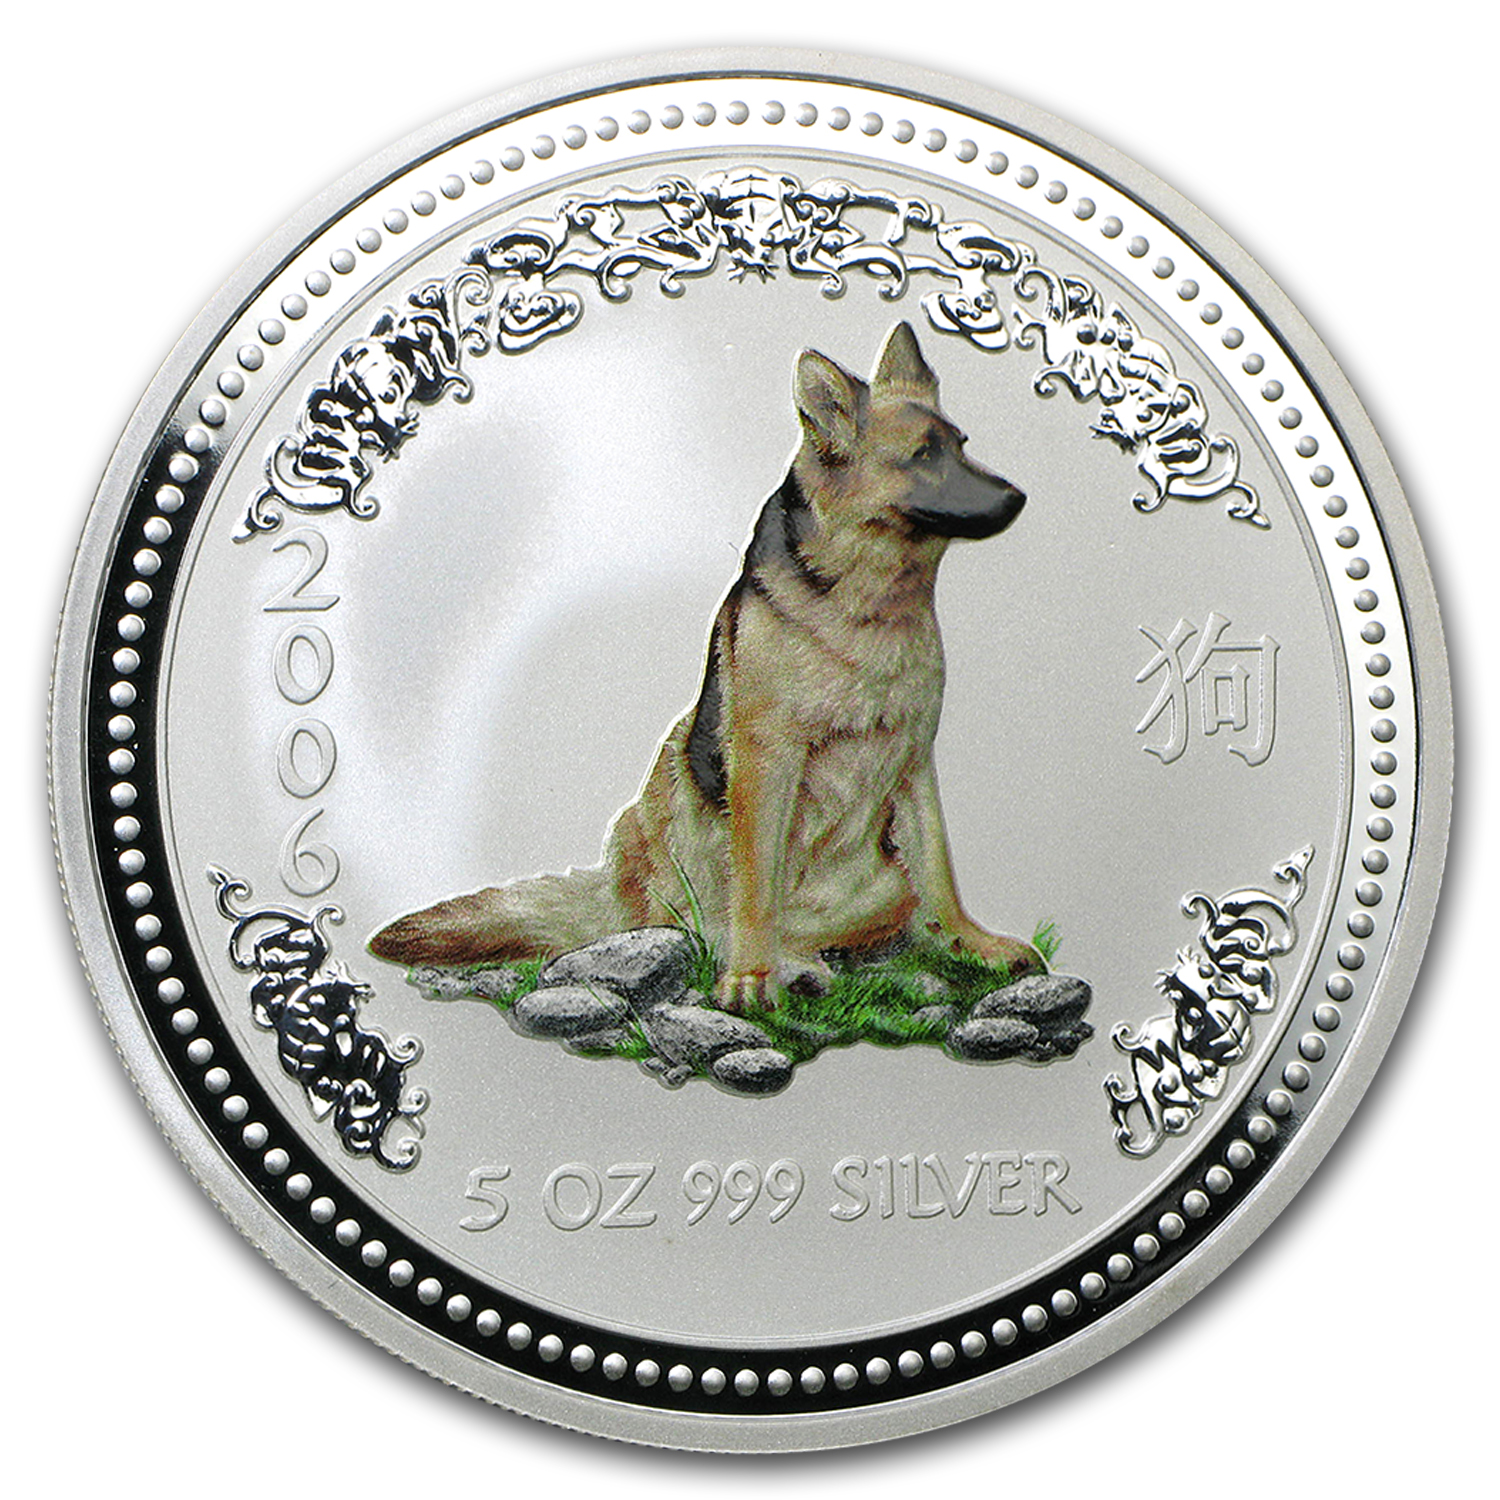 2006 Australia 5 oz Silver Year of the Dog BU (Colorized)